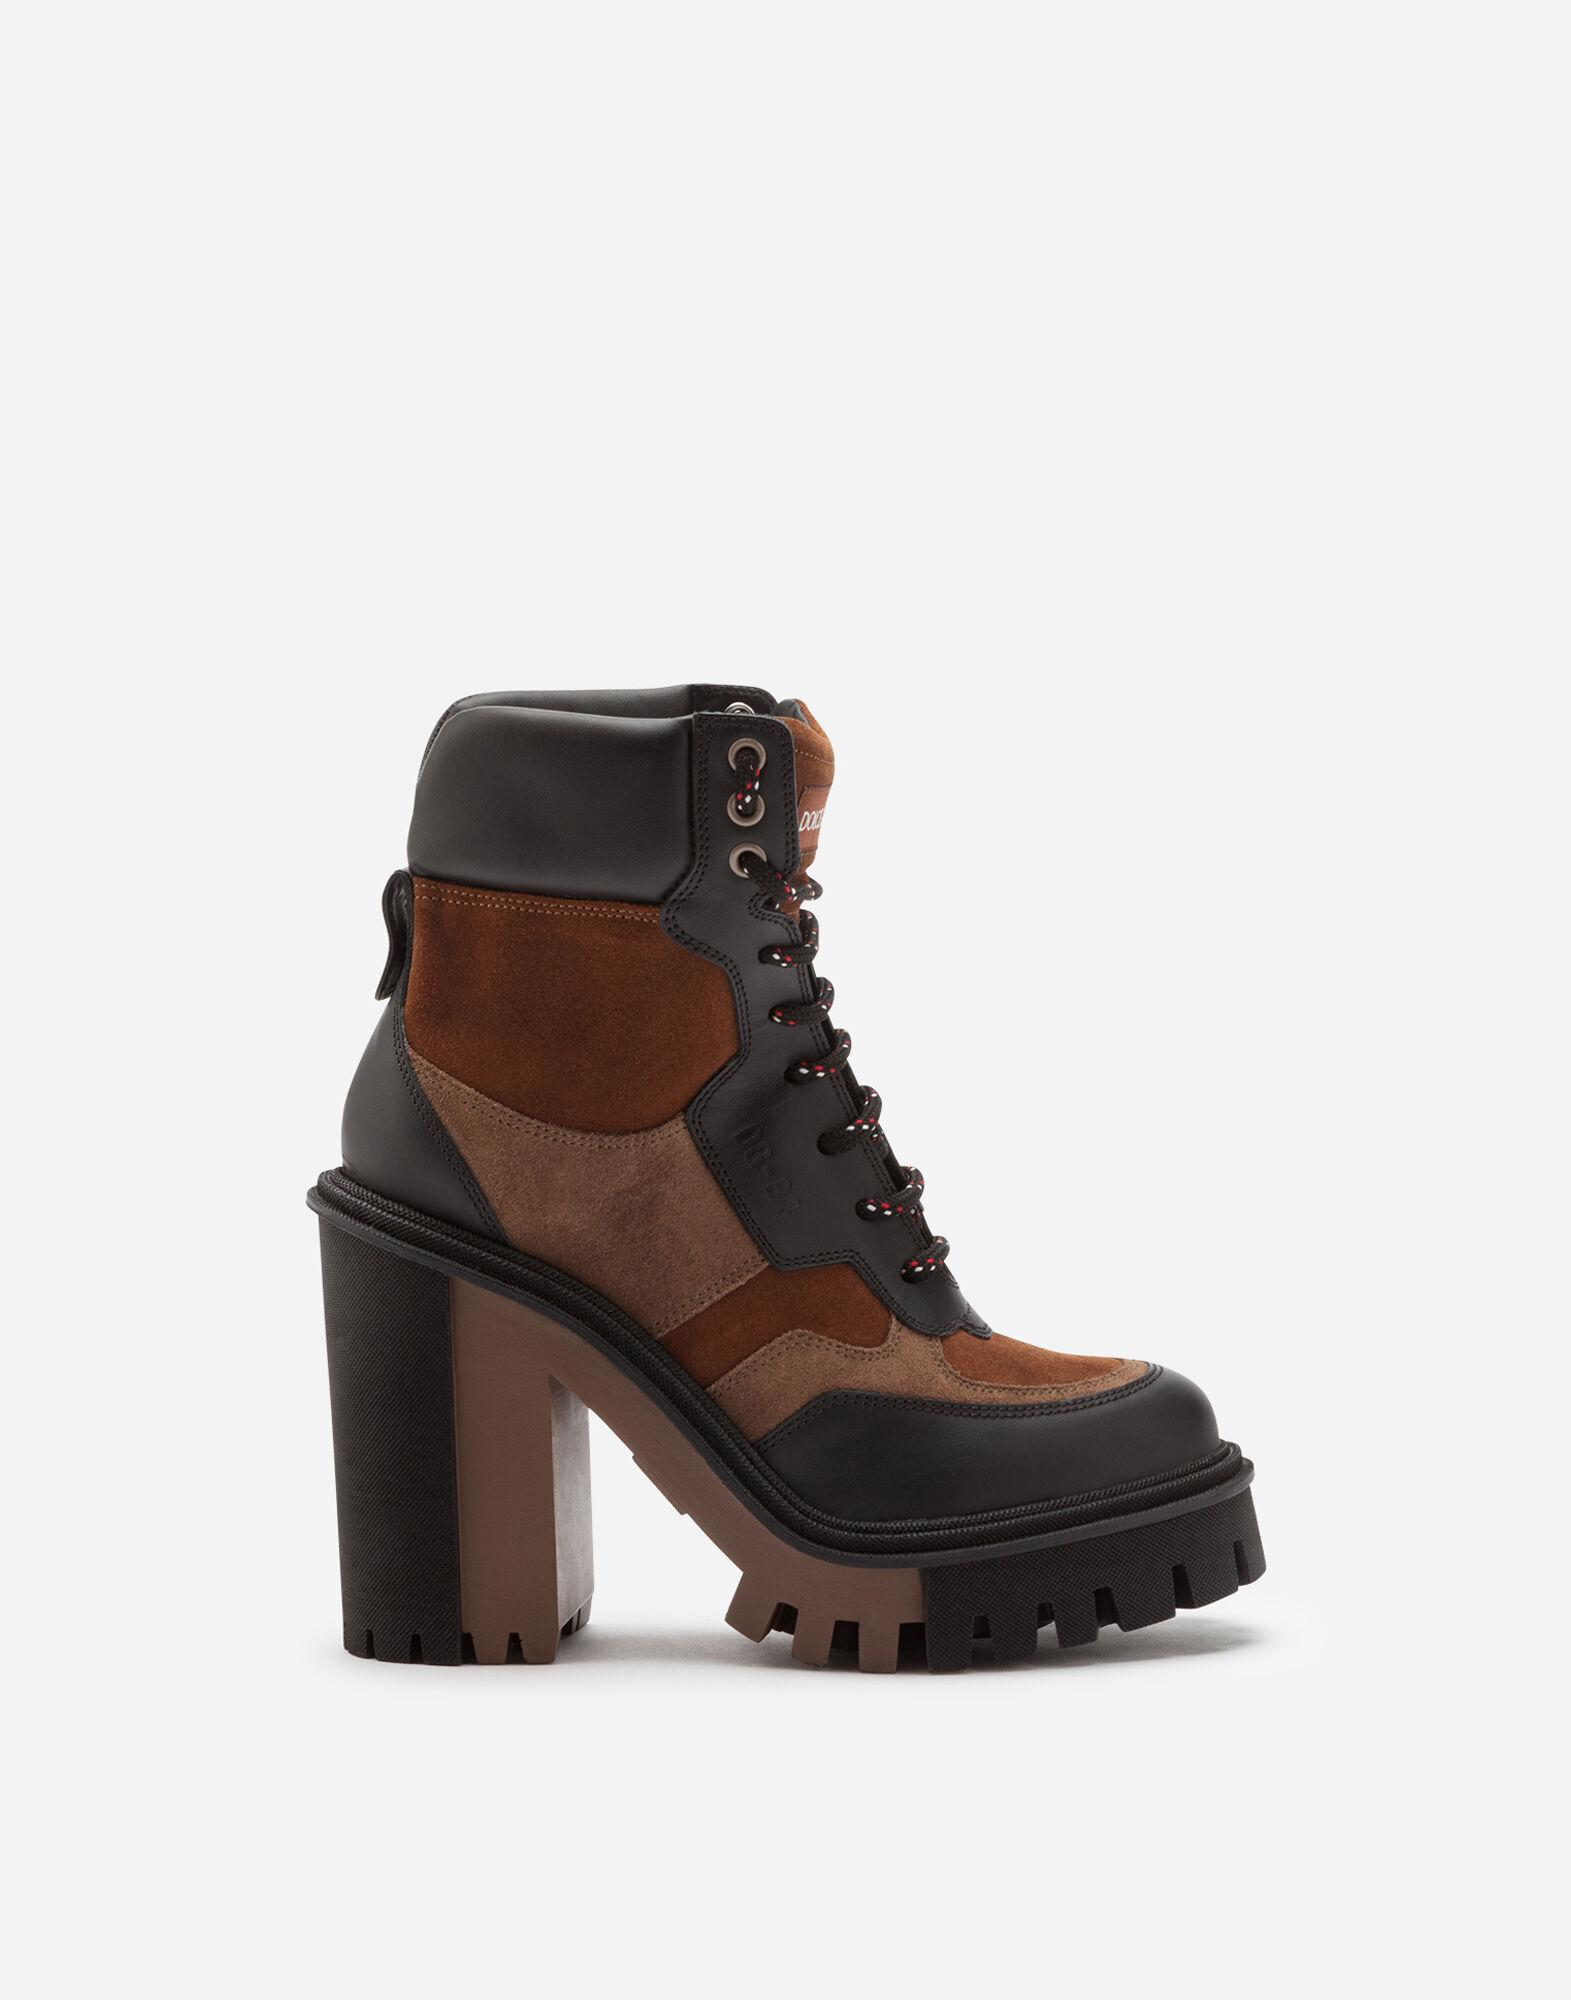 Trekking boots in two-tone mixed materials